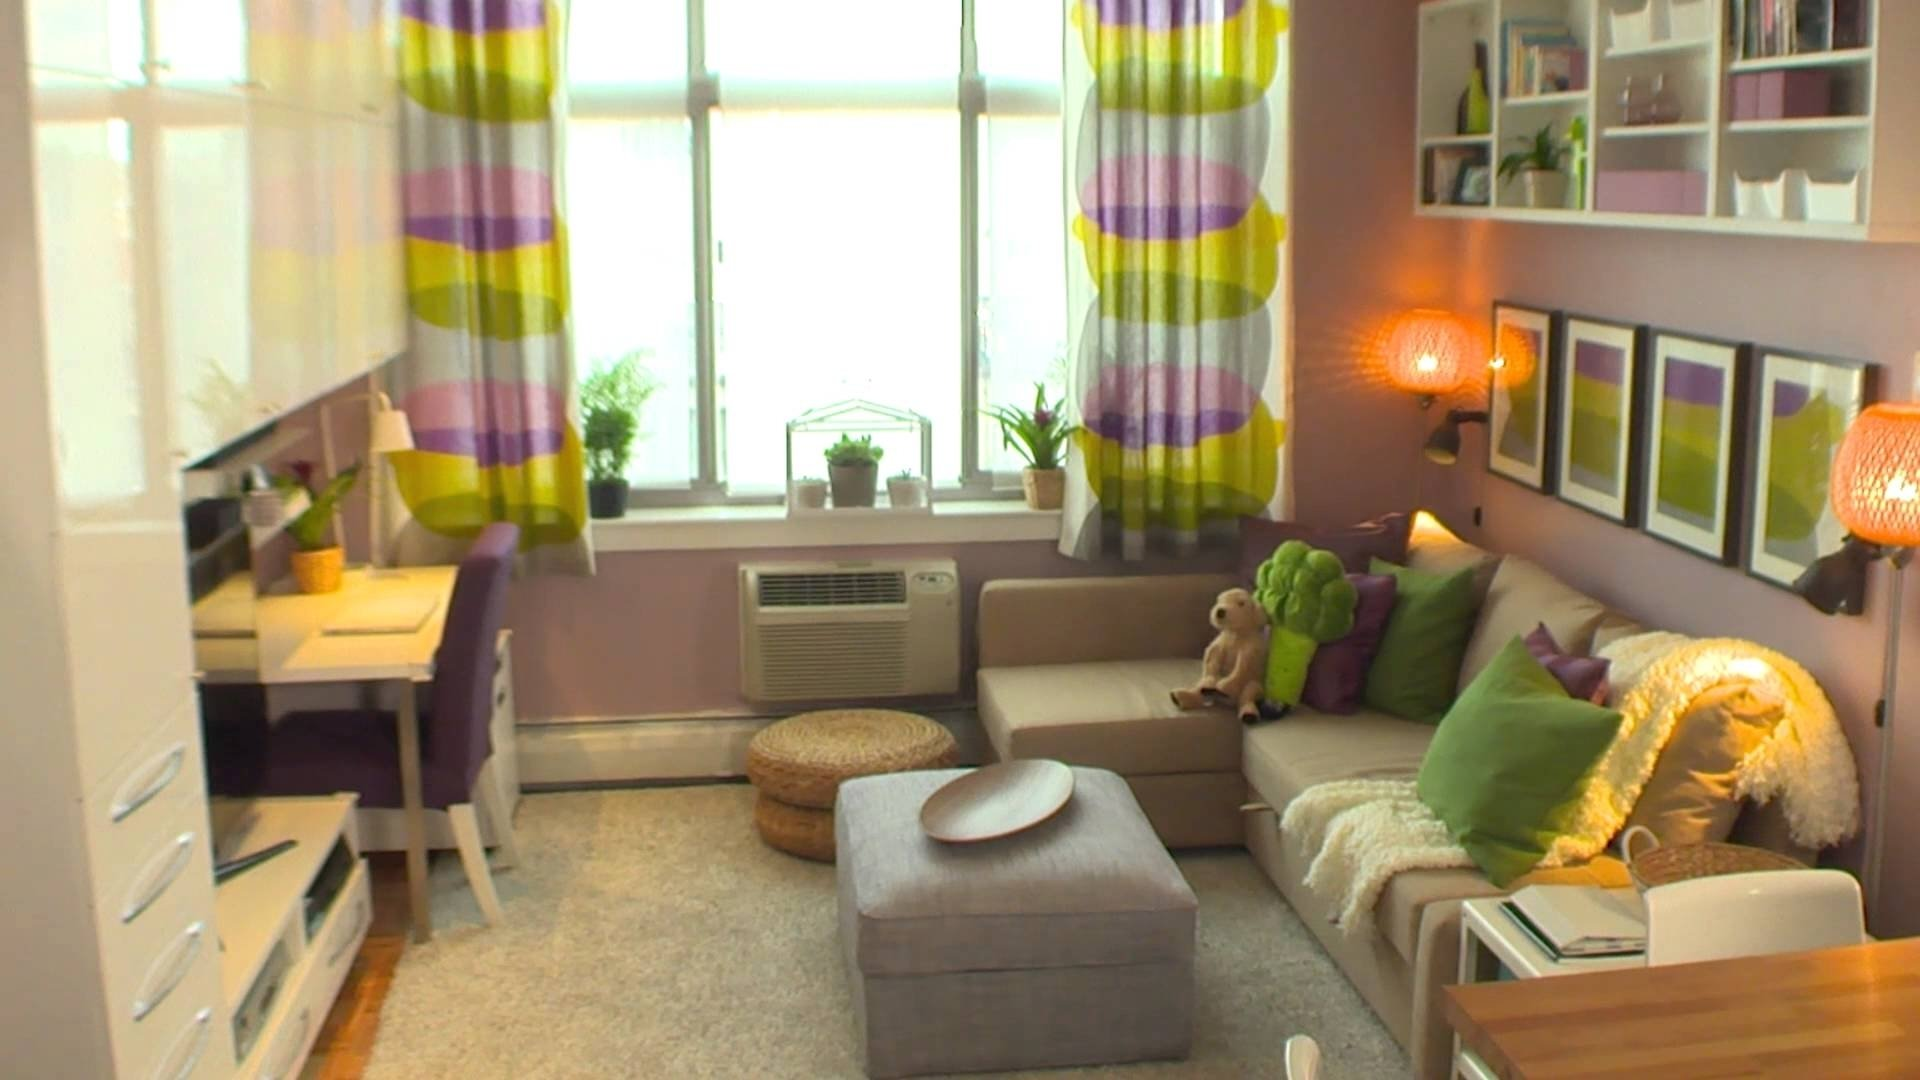 living room makeover ideas - ikea home tour (episode 113) - youtube